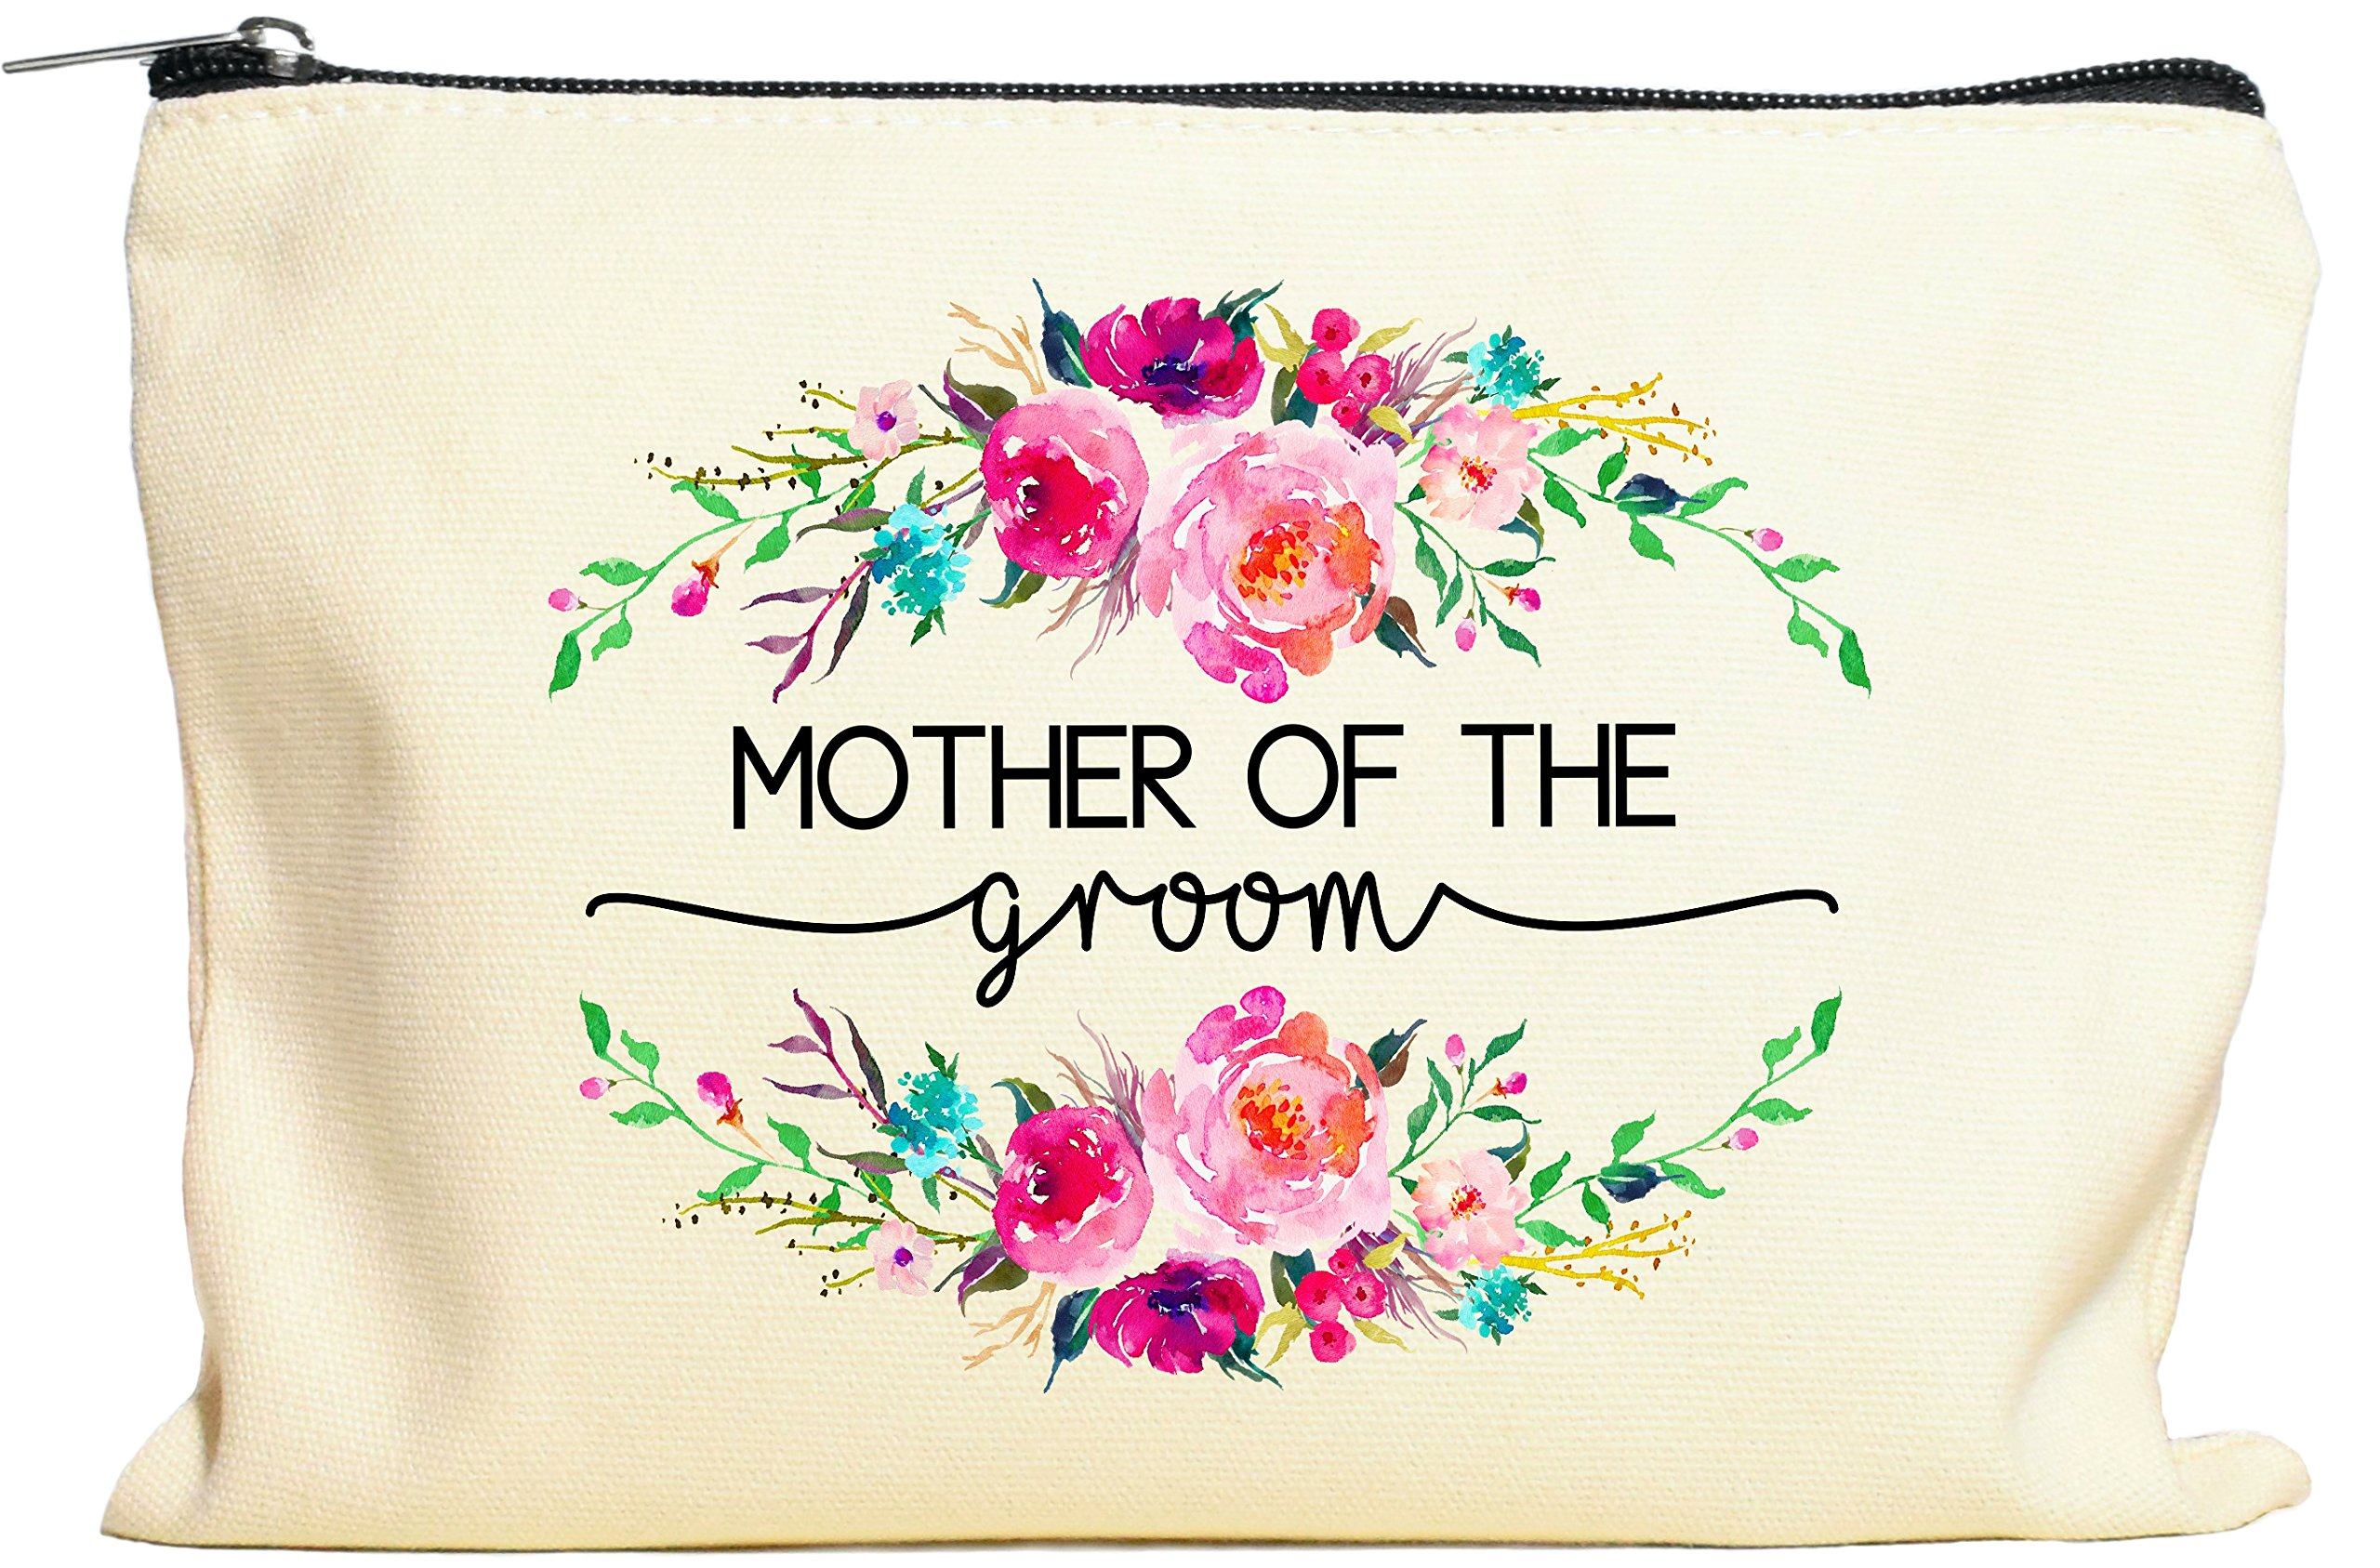 Mother Of The Groom Gifts, Grooms Mother, Makeup Bag, Mother Groom, Mother Son, Groom, Bridal Party Gifts